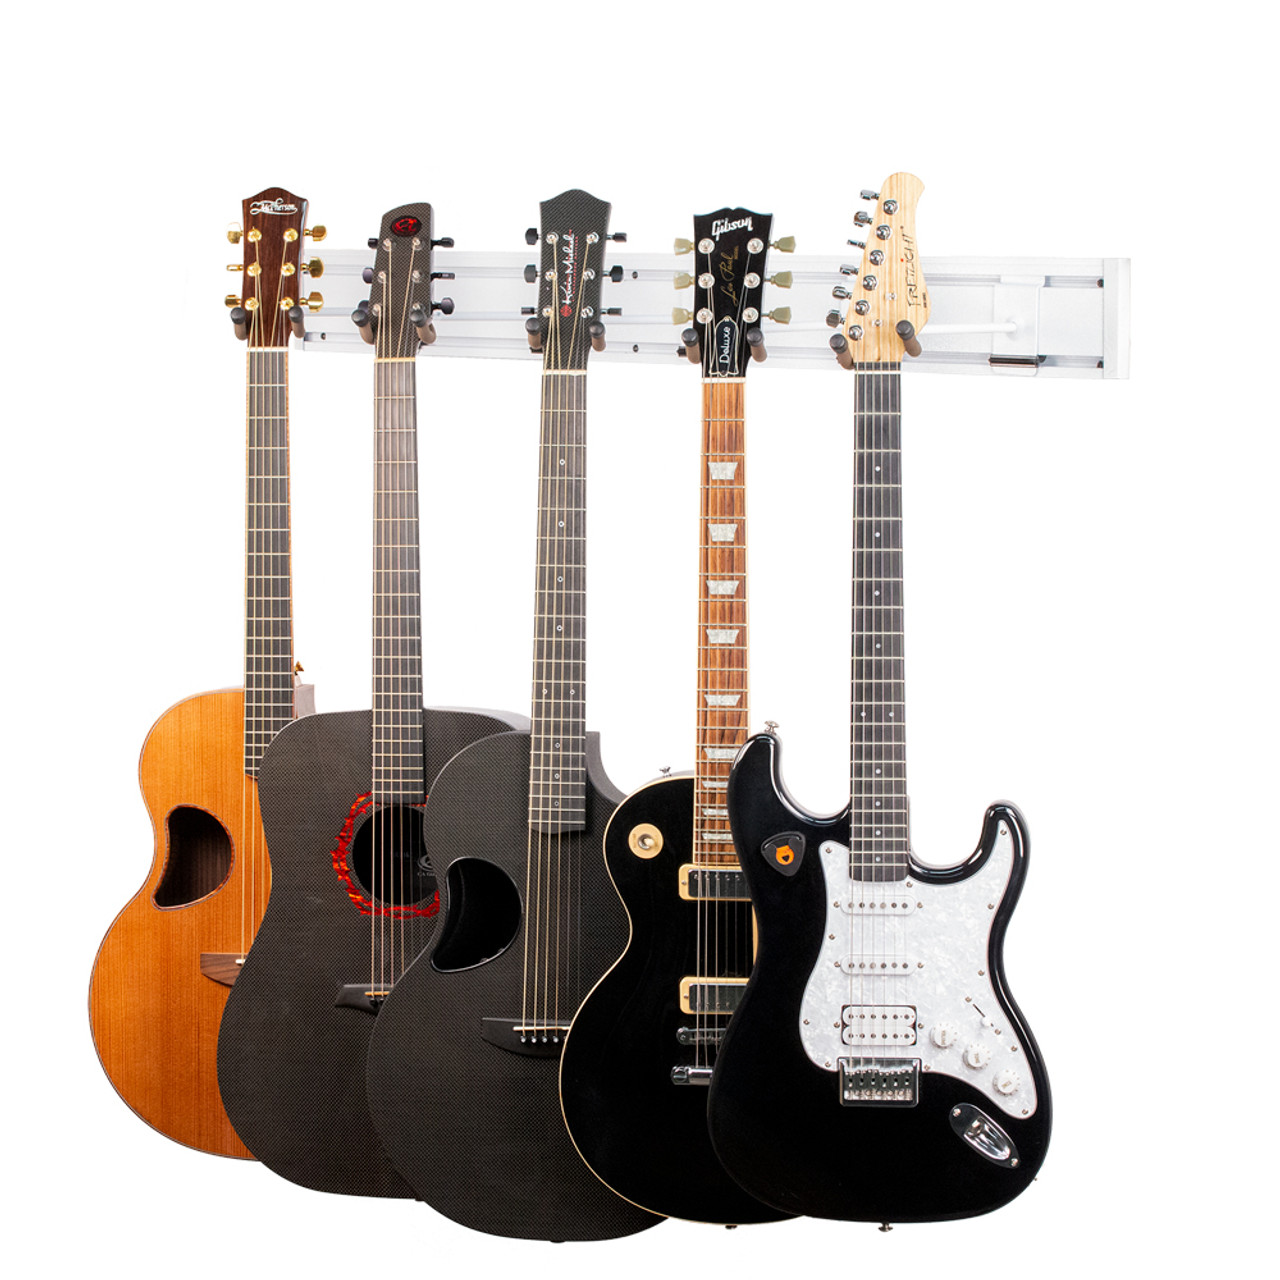 String Swing Guitar Rack Black Vein Left or Right 5 Electric or Acoustic